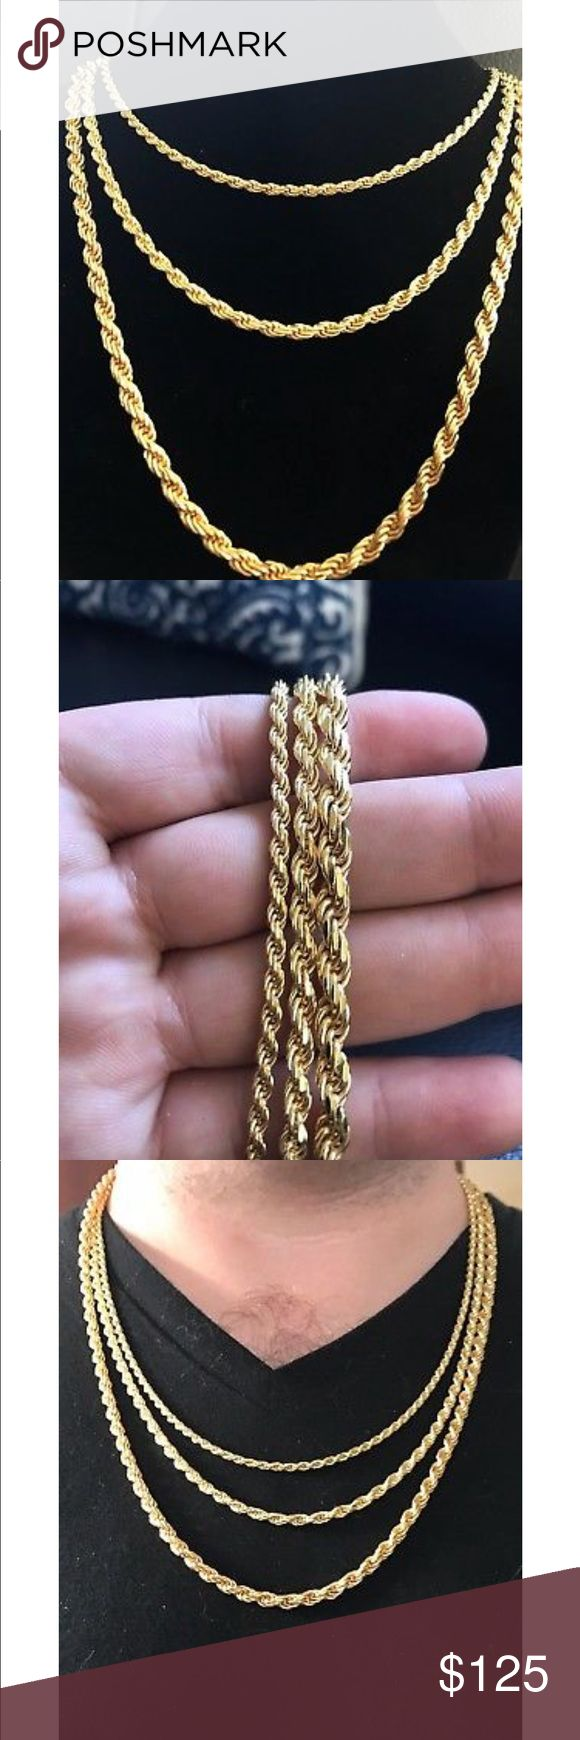 "14K Gold Over Solid 925 Silver Rope Chain 14K Gold Over Solid 925 Silver Rope Chain MADE IN ITALY 24"" 26"" 28"" 3-5mm UNISEX.                                         Thickness sizes available - 3mm 4mm 5mm                      Length sizes available - 24"" 26"" 28"" Accessories Jewelry"